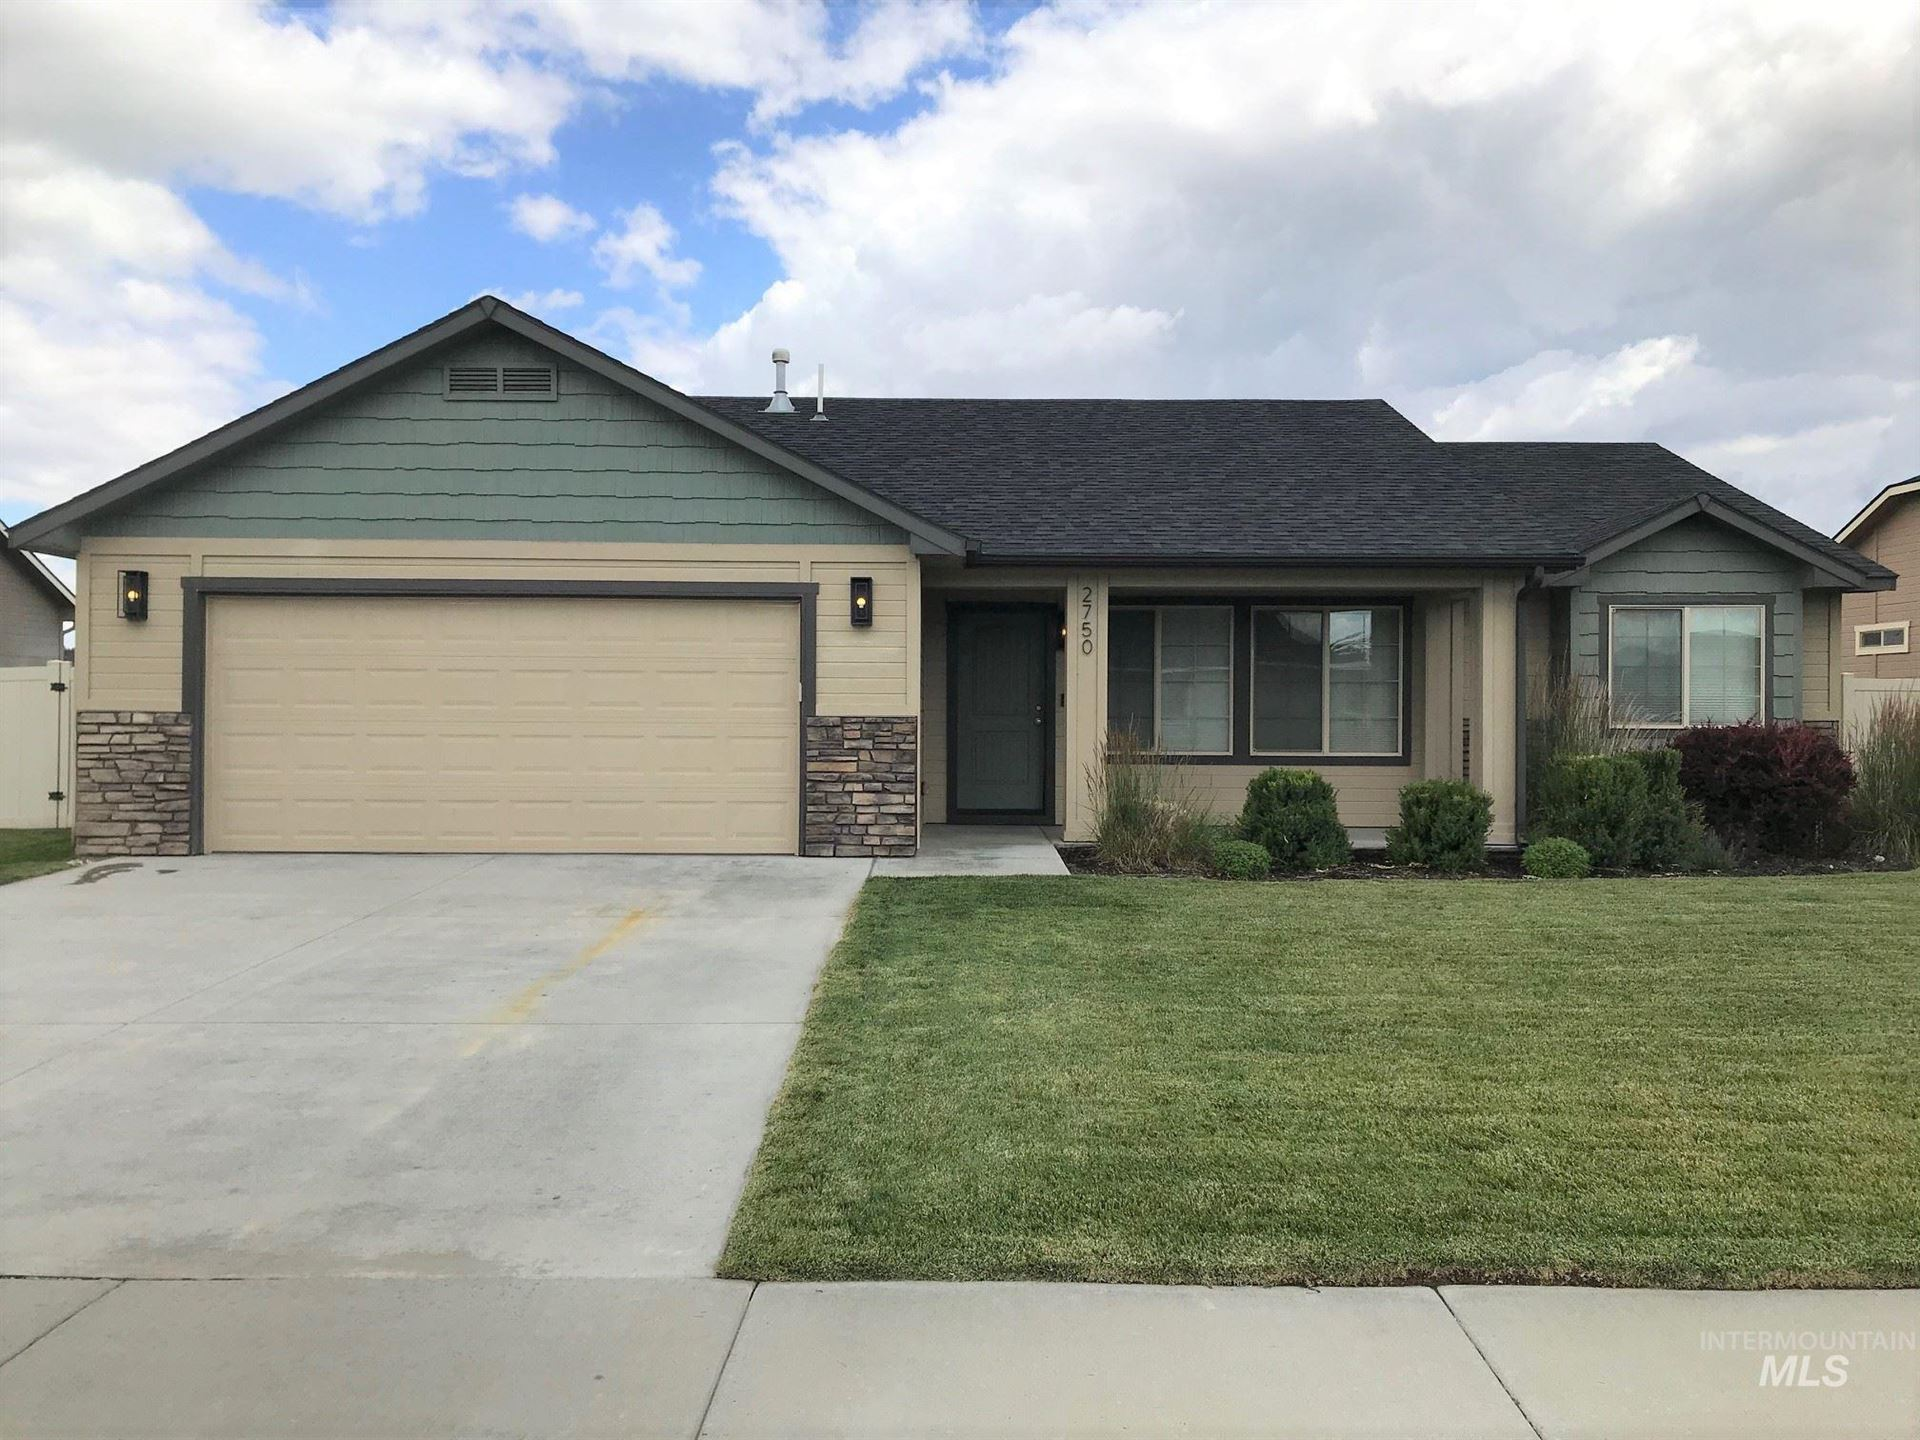 Photo of 2750 Spruce Dr, Fruitland, ID 83619 (MLS # 98772369)